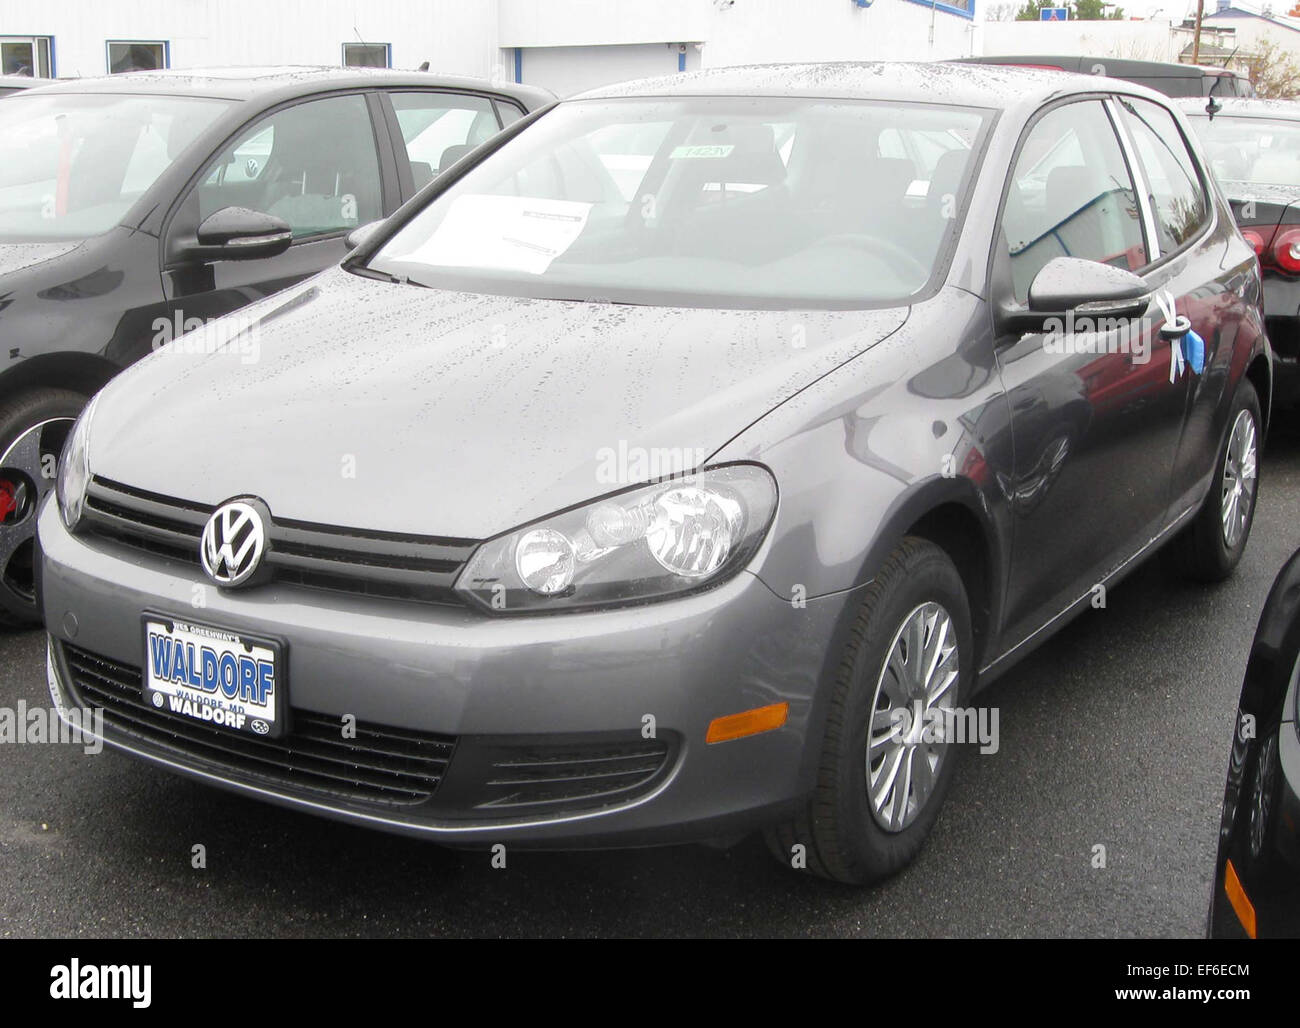 2010 Volkswagen Golf 2 Door 10 31 2009   Stock Image